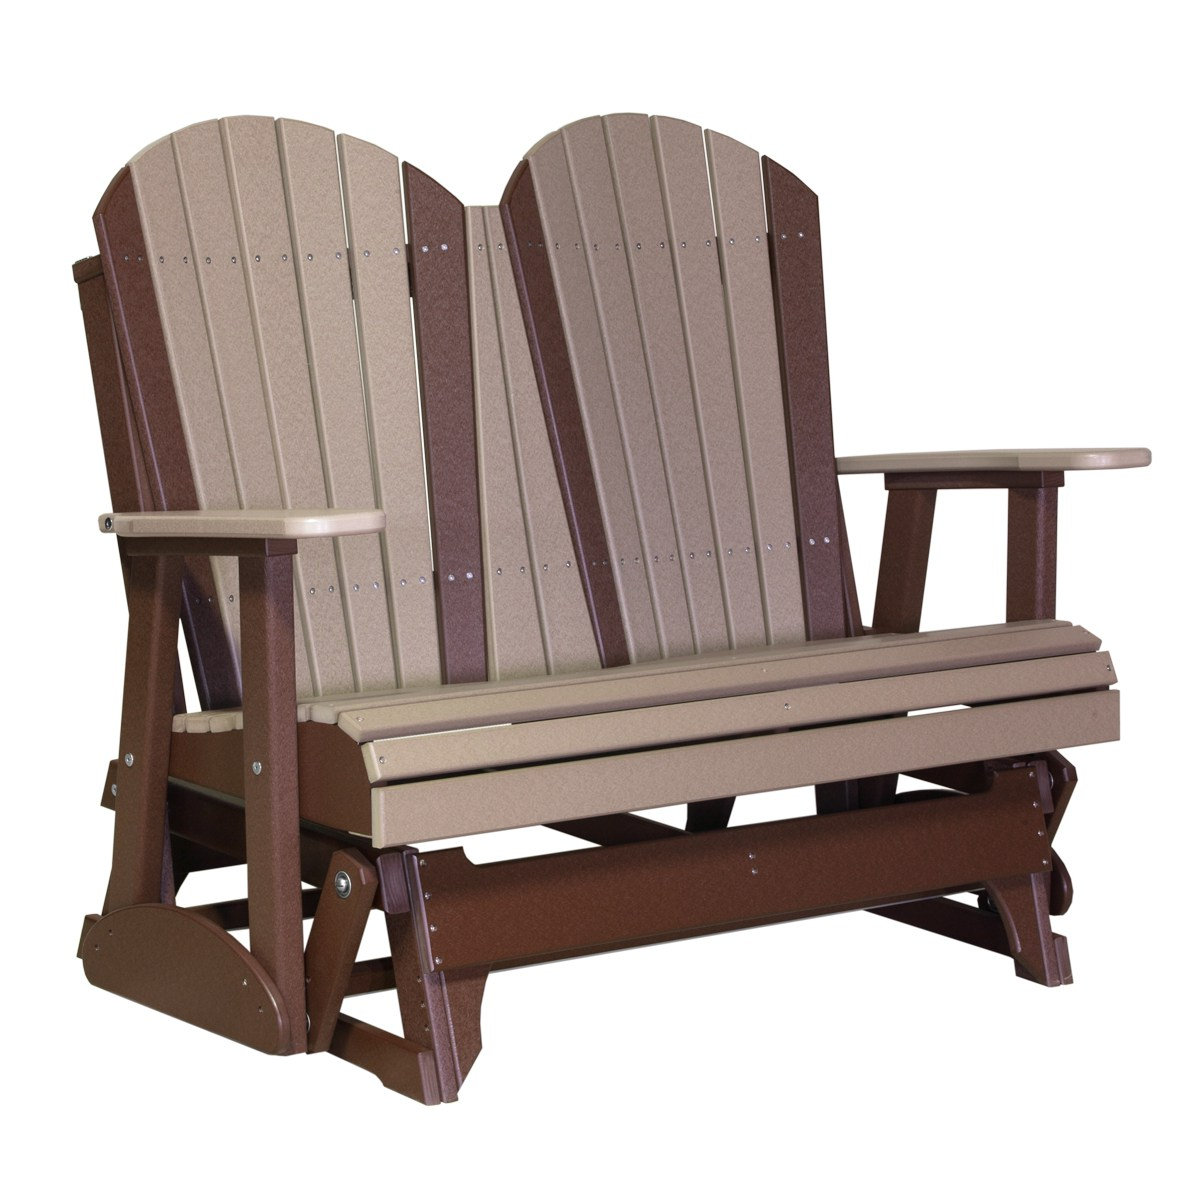 double rocking adirondack chair plans ice cream chairs for sale glider recycled patio fine oak things